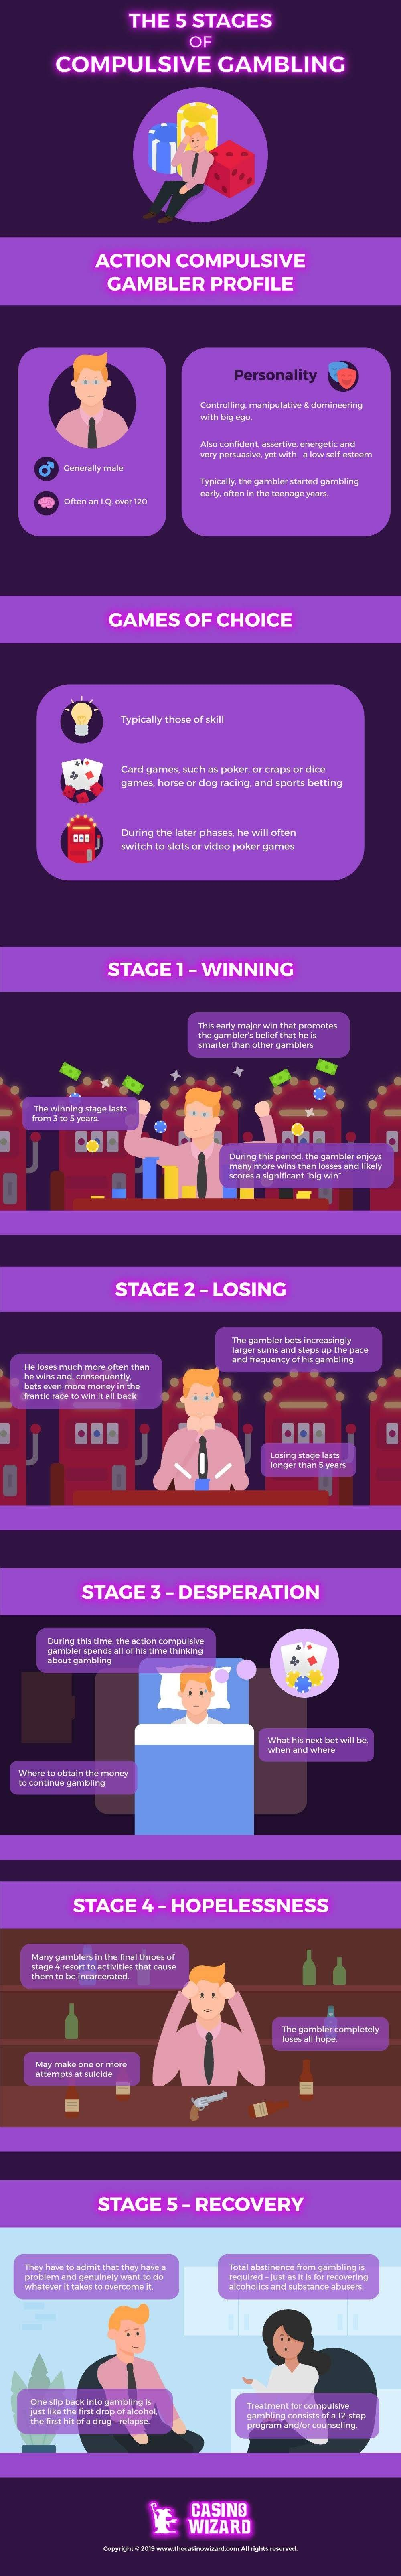 The 5 Stages of Compulsive Gambling #infographic